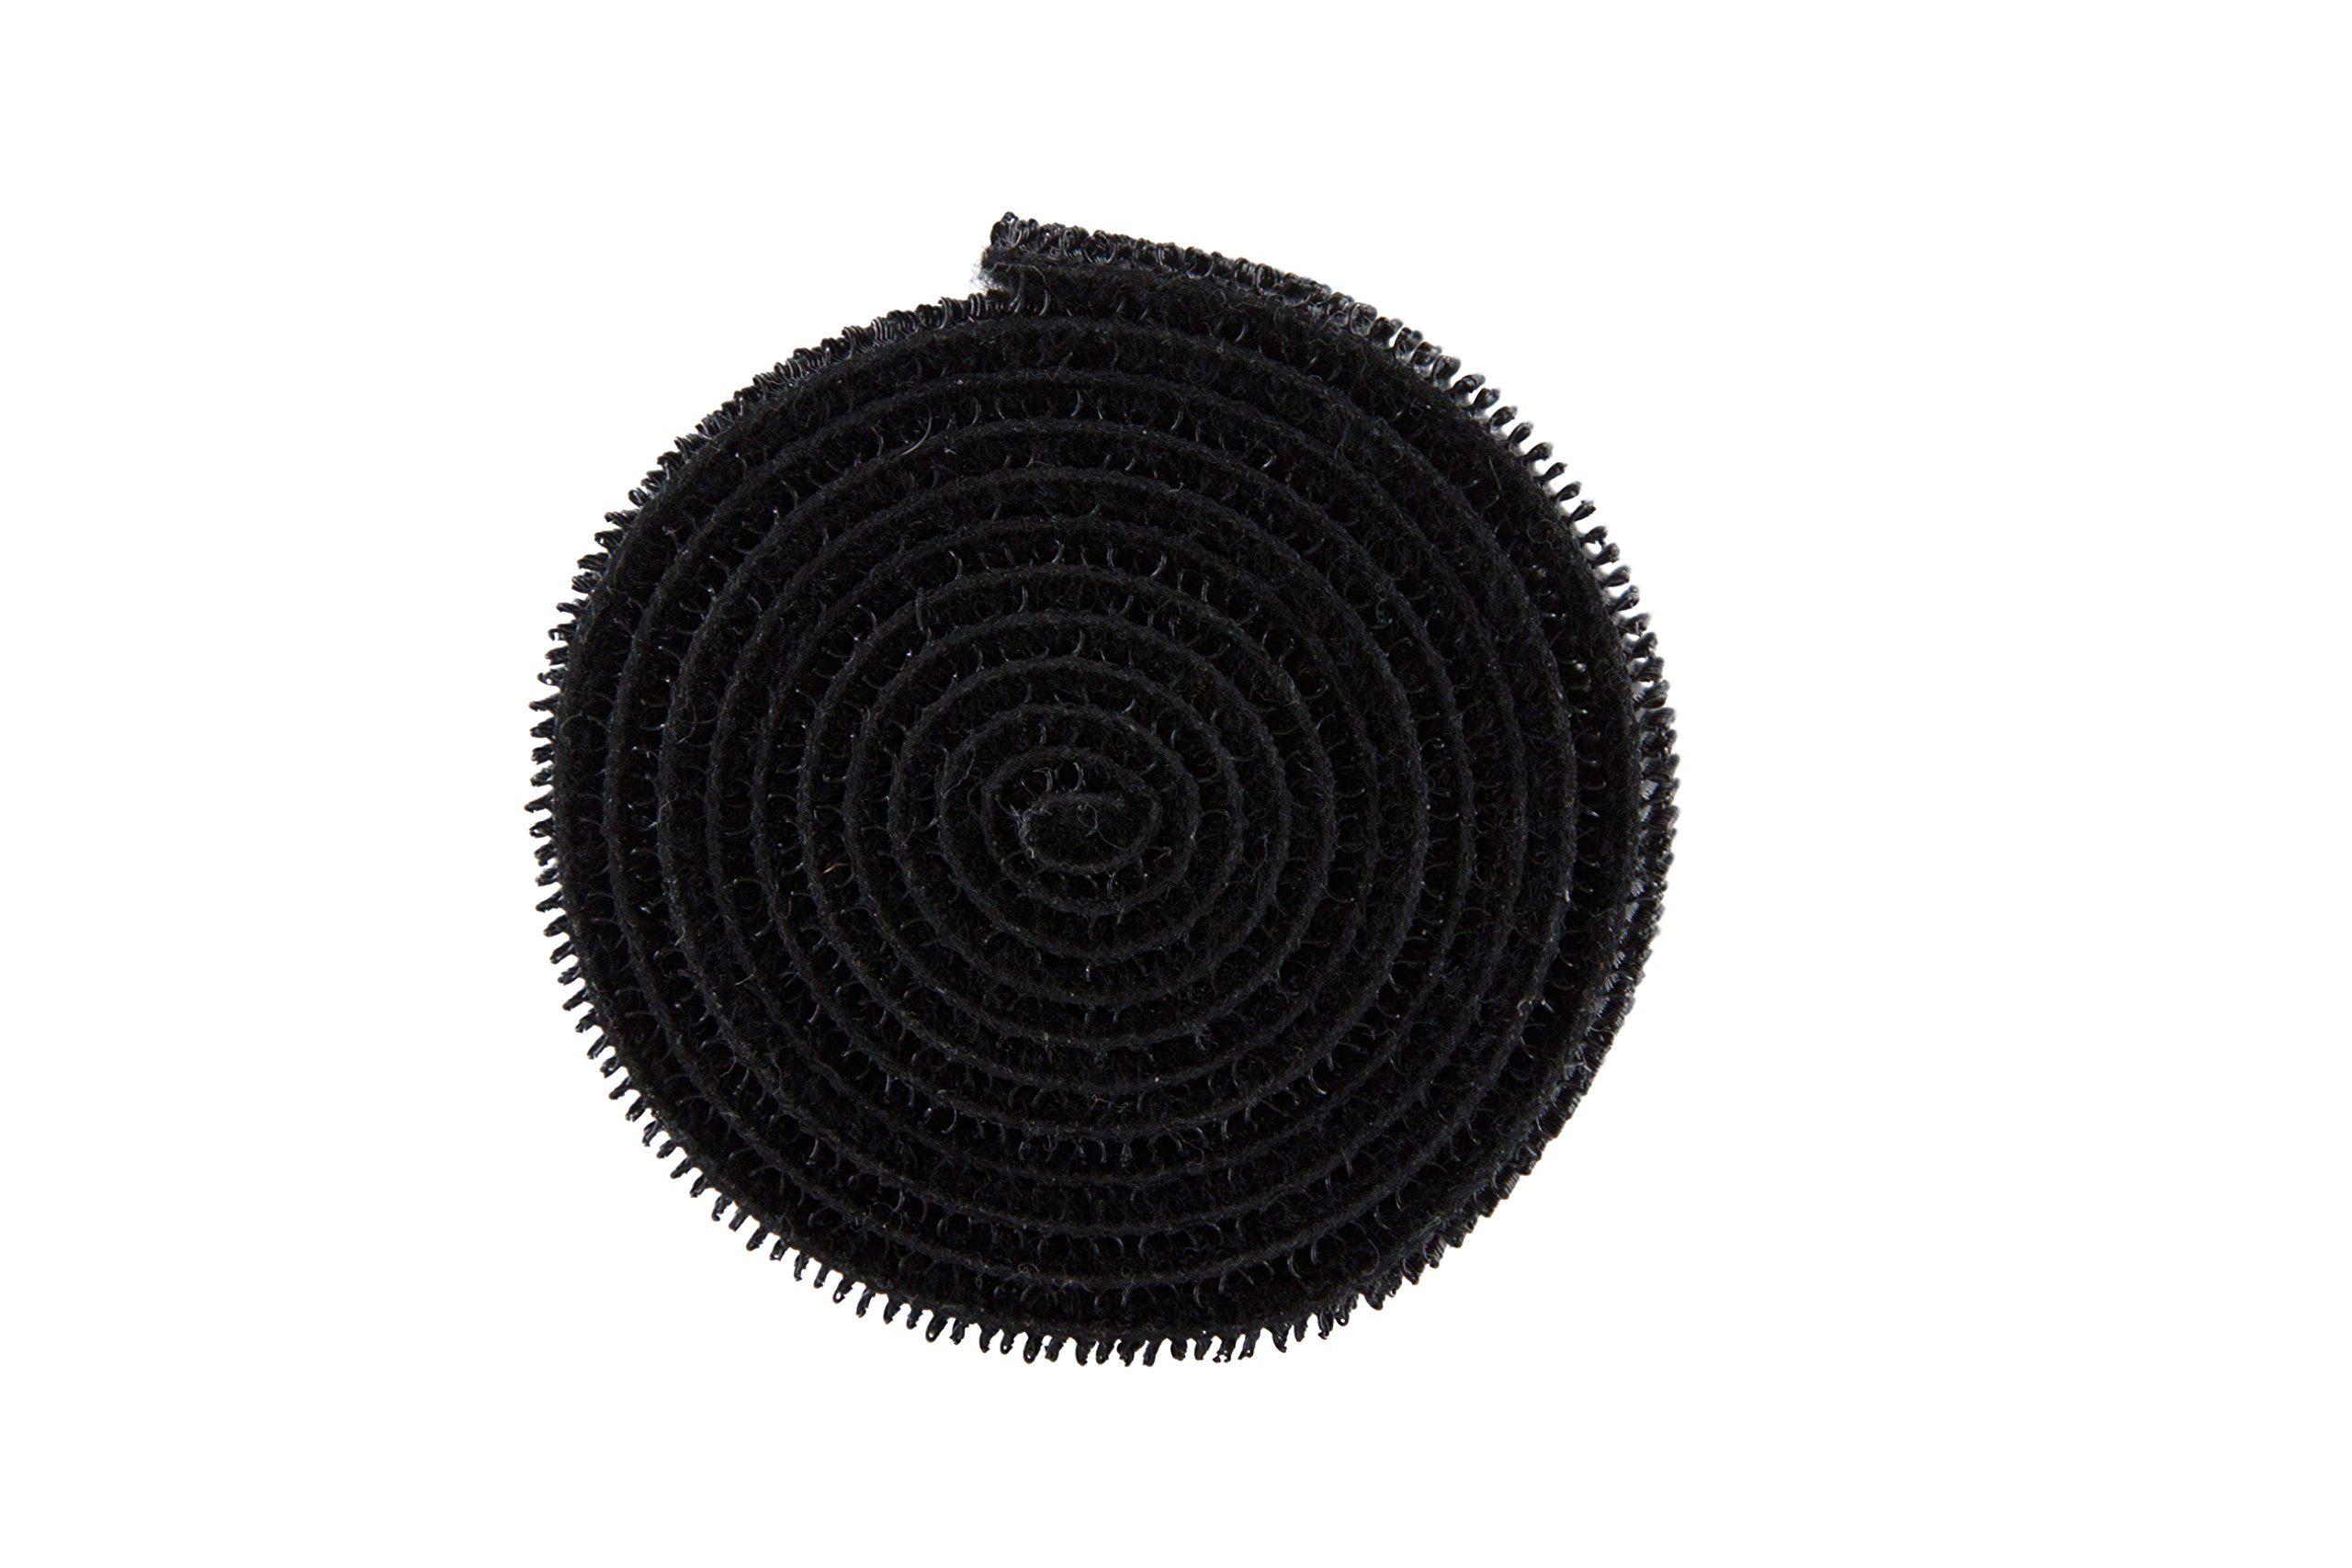 Baumgartens Nylon Cord Roll Black (Pack of 10) (48000)